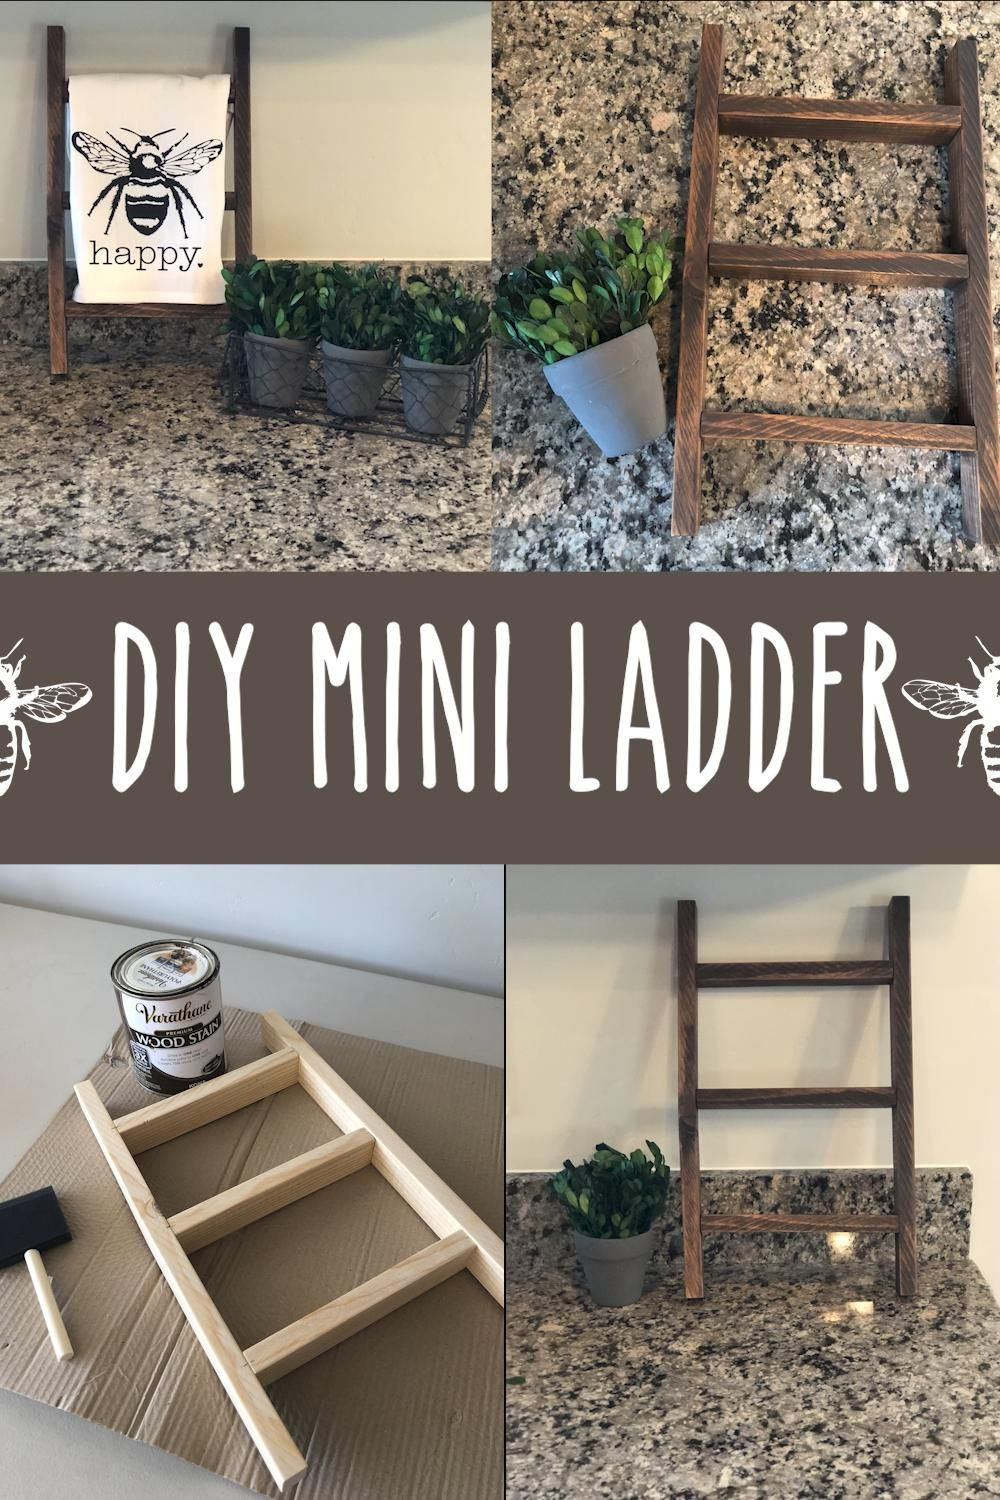 DIY Mini Ladder Great For Tea Towels -   17 diy projects for the home ideas